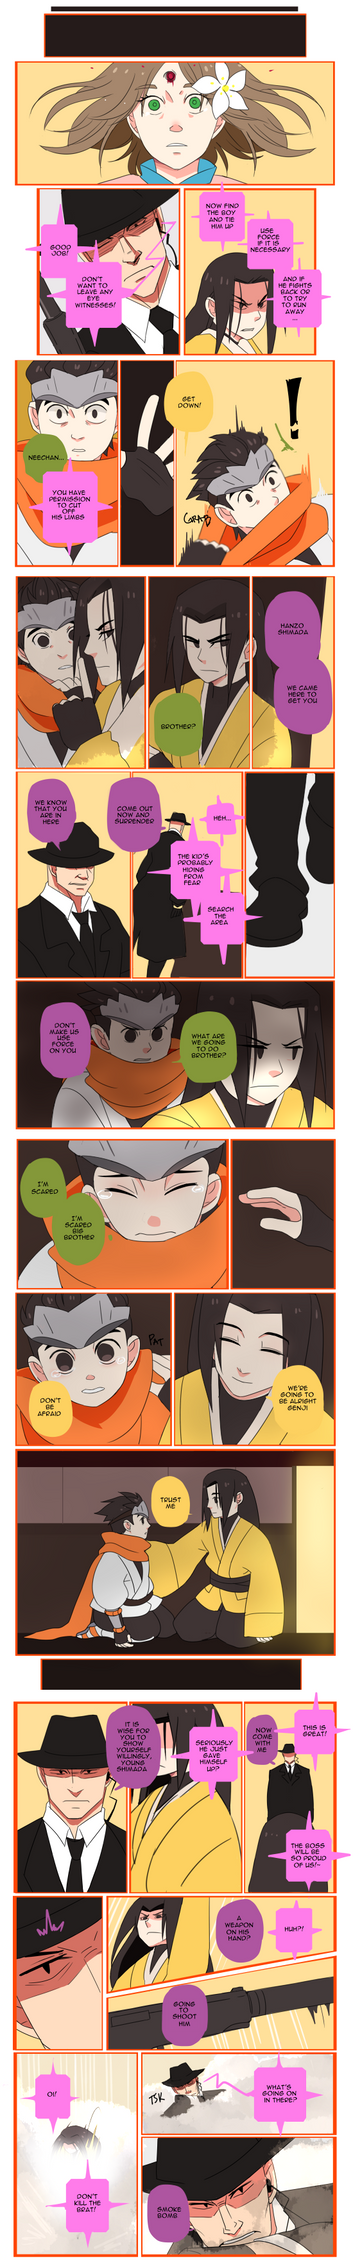 Overwatch Comic: Brothers Page 5 by Fruitloop-chan